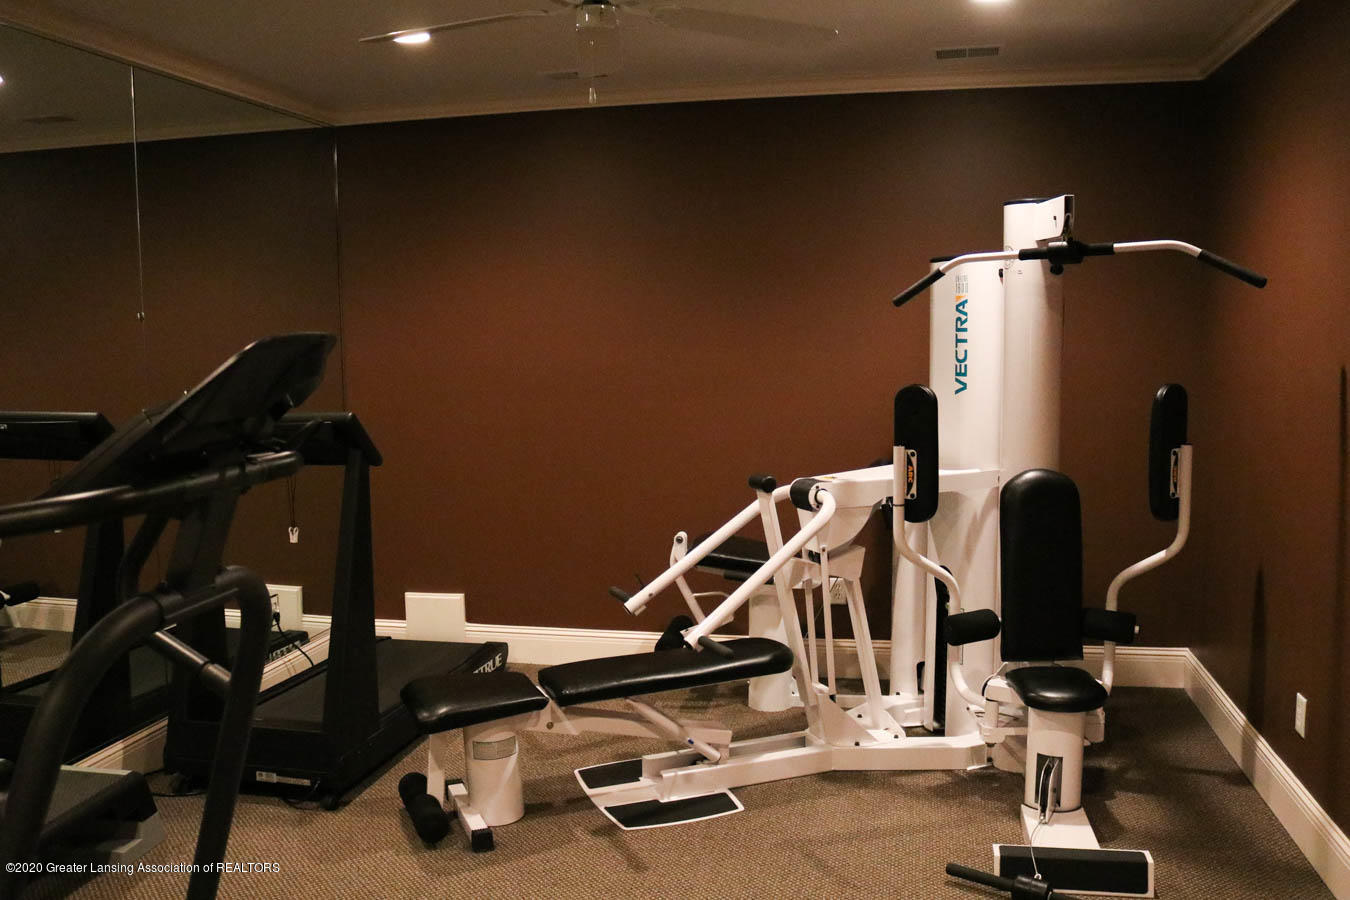 6090 Standish Ct - Excercise Room - 77